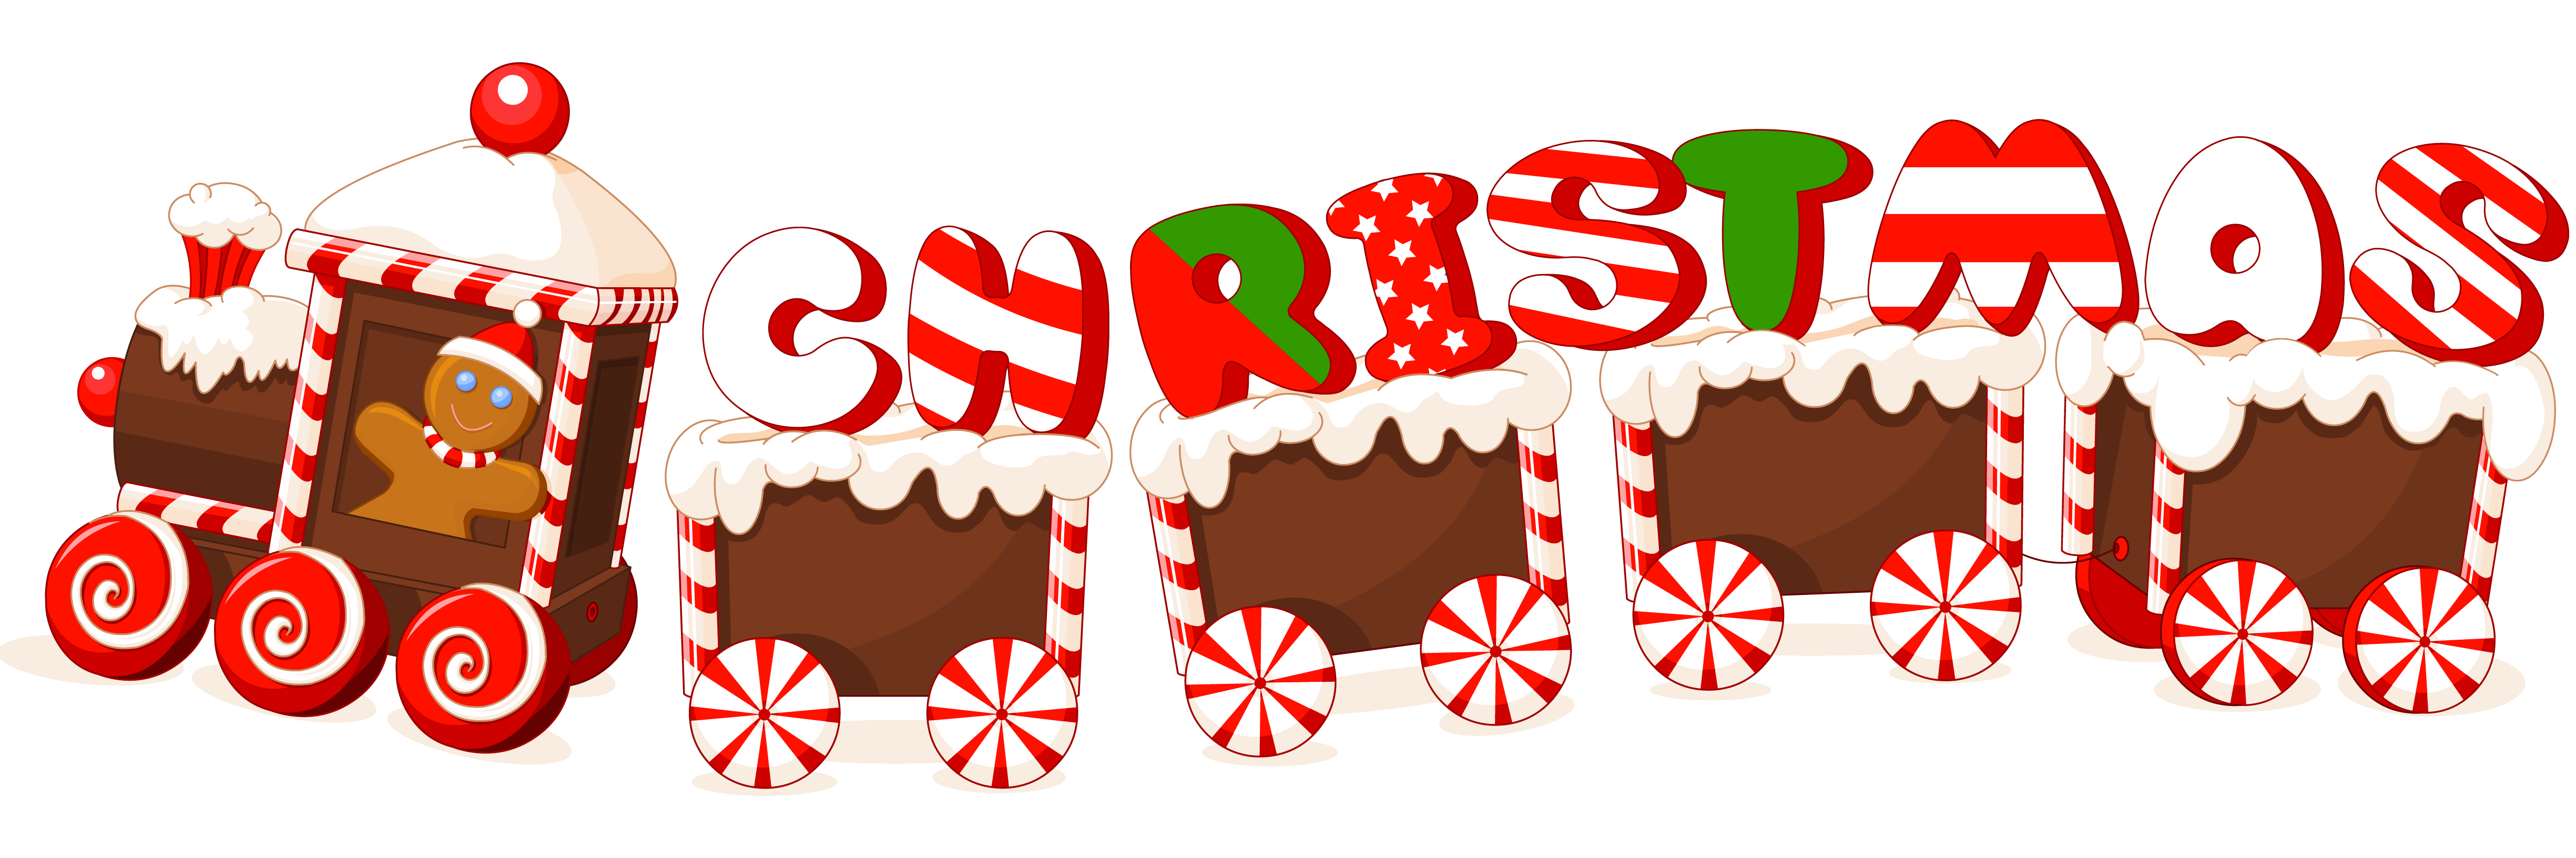 clip art black and white 2016 vector merry christmas #109405210